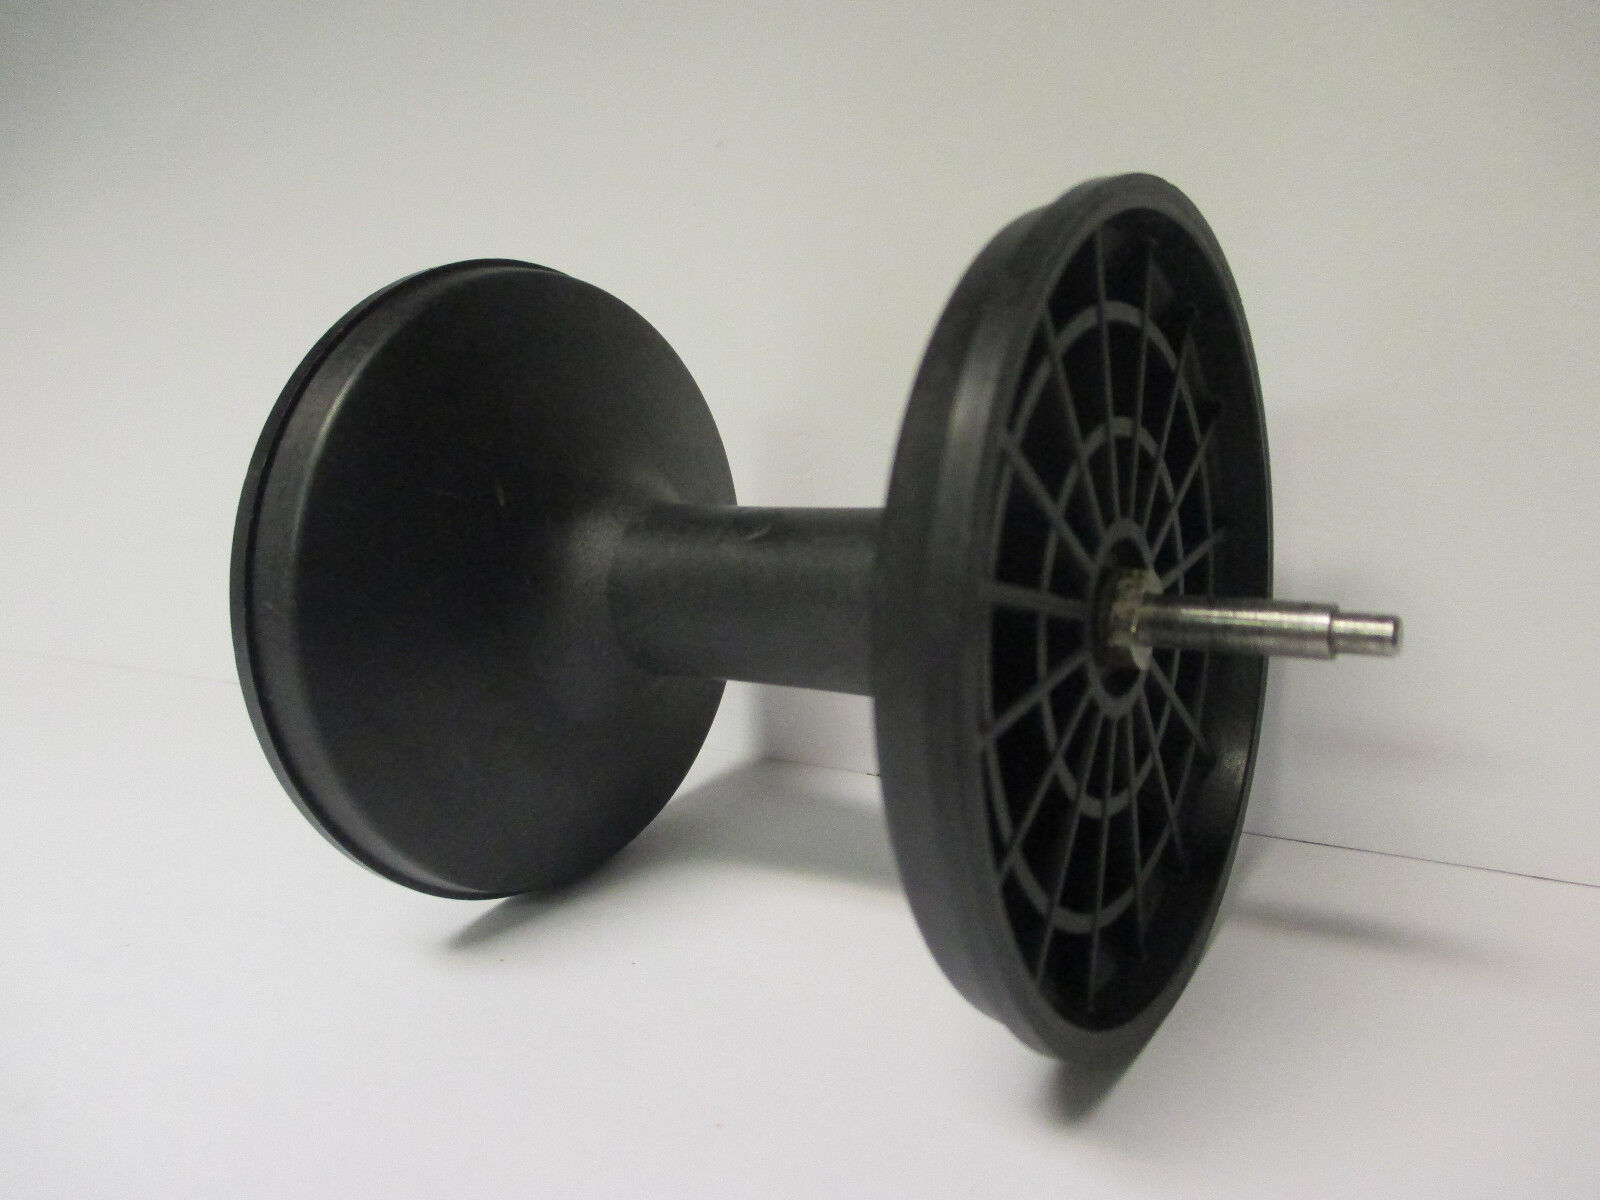 USED NEWELL BIG GAME REEL PART - 447 F - Spool Assembly  A